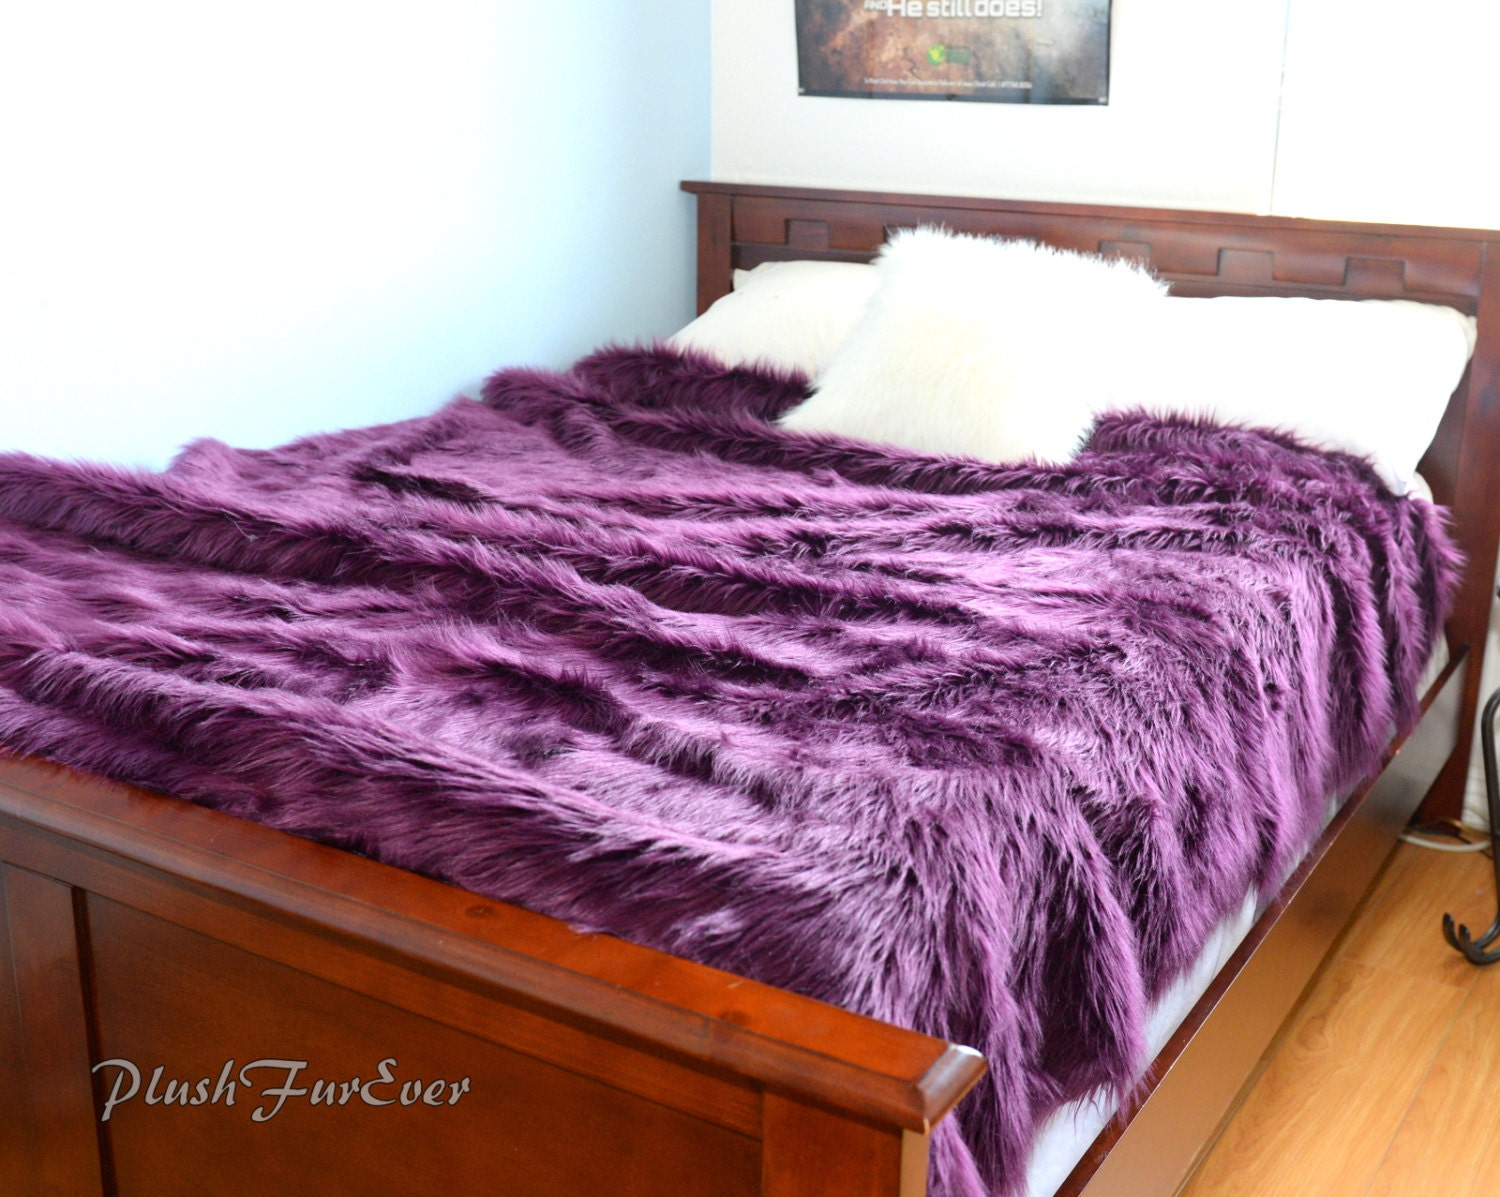 luxurious faux fur bedspread lavender purple king queen twin size bedding coverlets bed cover. Black Bedroom Furniture Sets. Home Design Ideas